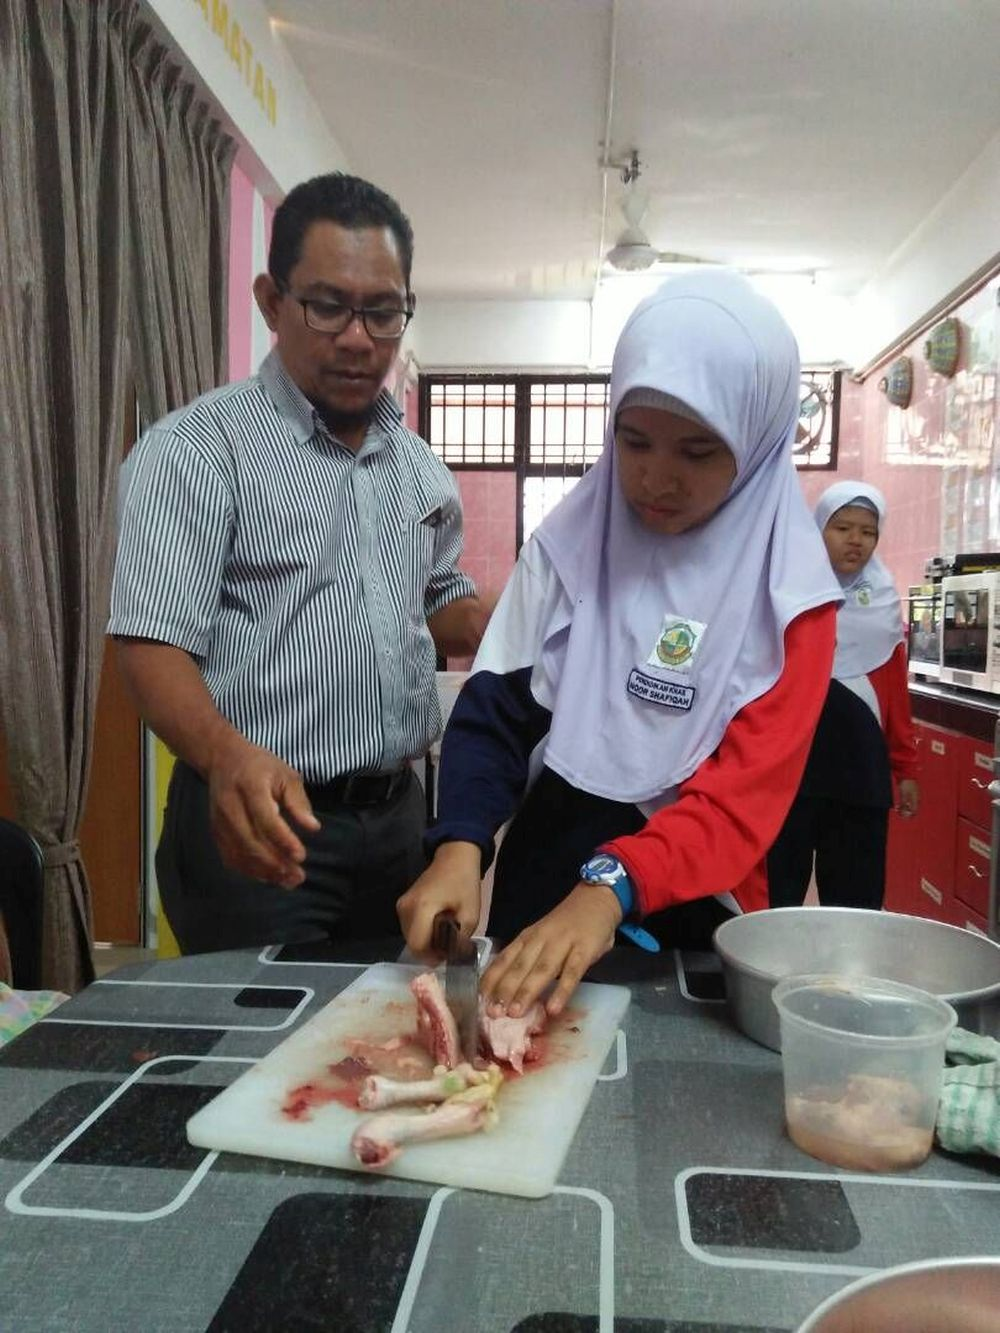 Muhamad Khairul Anuar Hus¬sin coaches a student on preparing a chicken dish. — Picture courtesy of Muhamad Khairul Anuar Hus¬sin